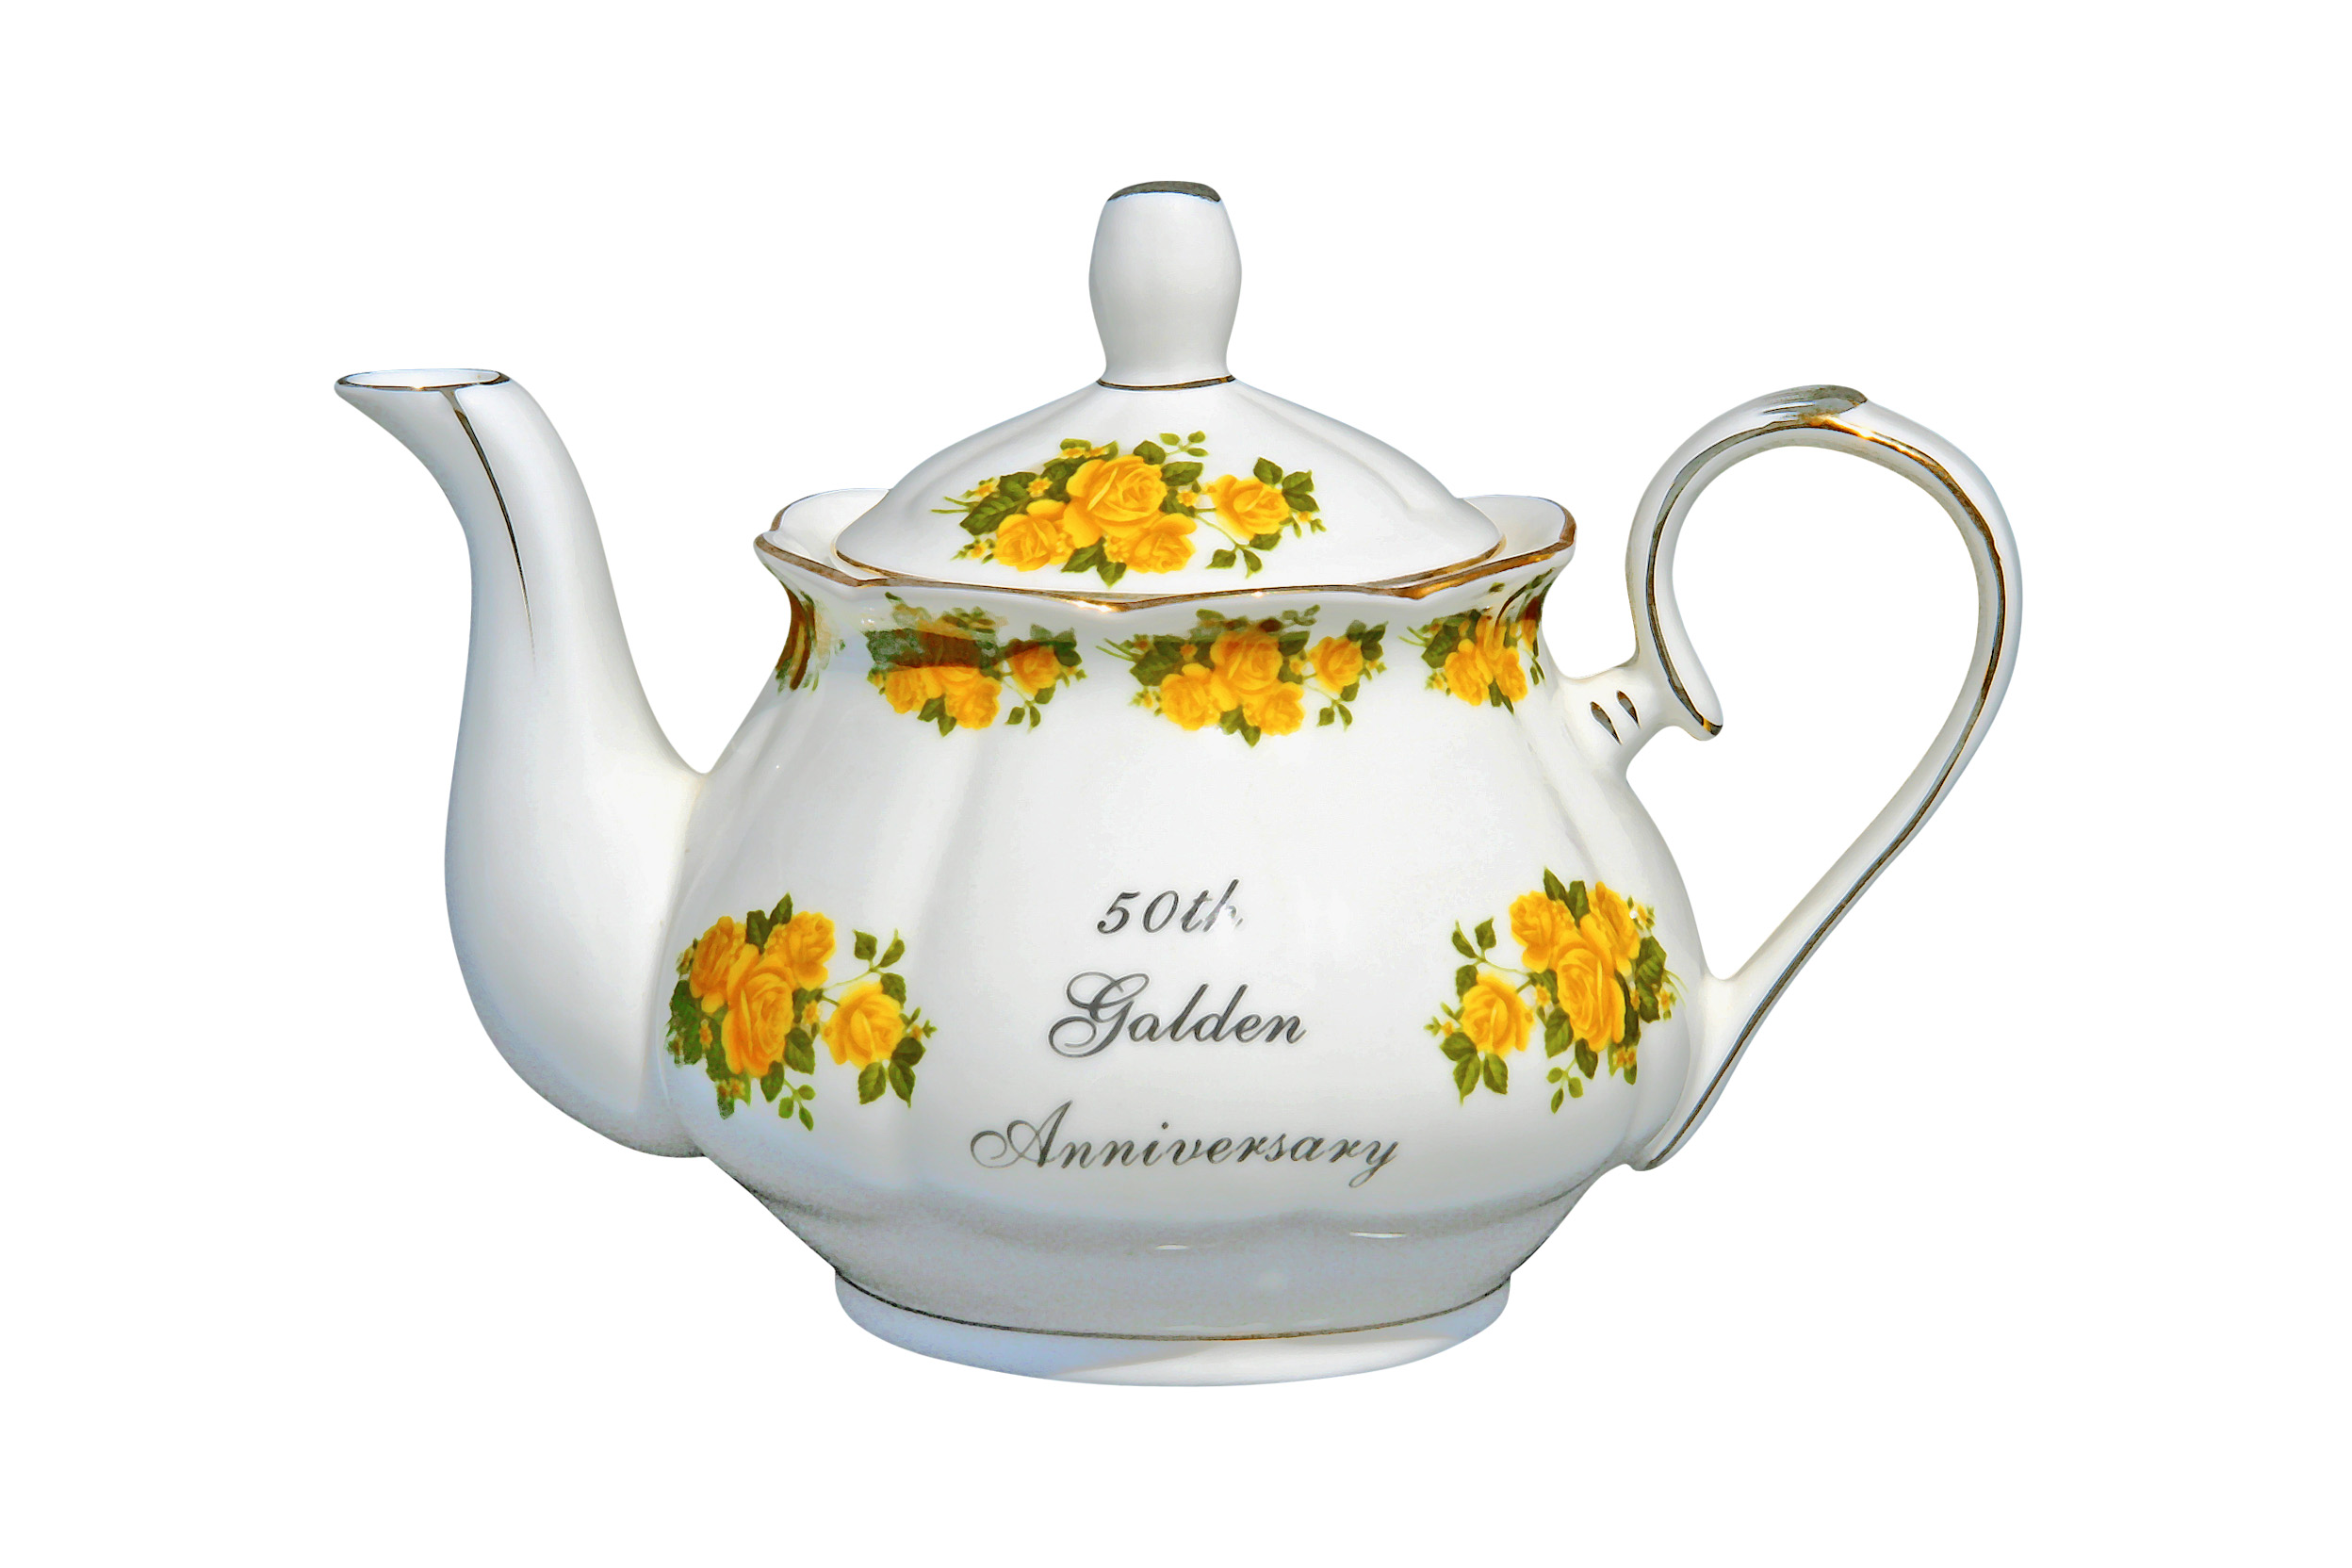 50th Anniversary 2 cup Teapot